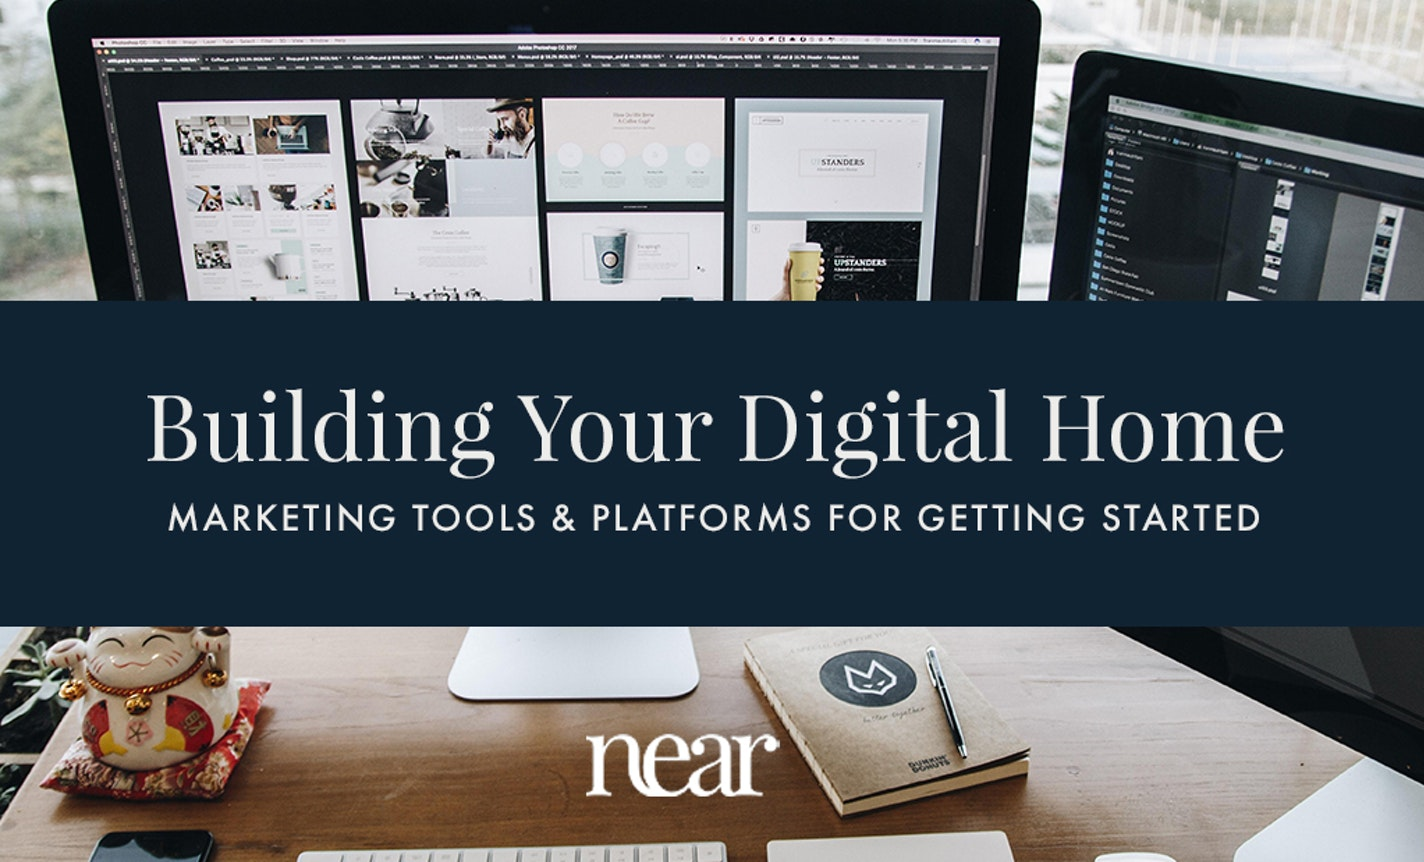 Building Your Digital Home: Tools & Platforms to Get Started